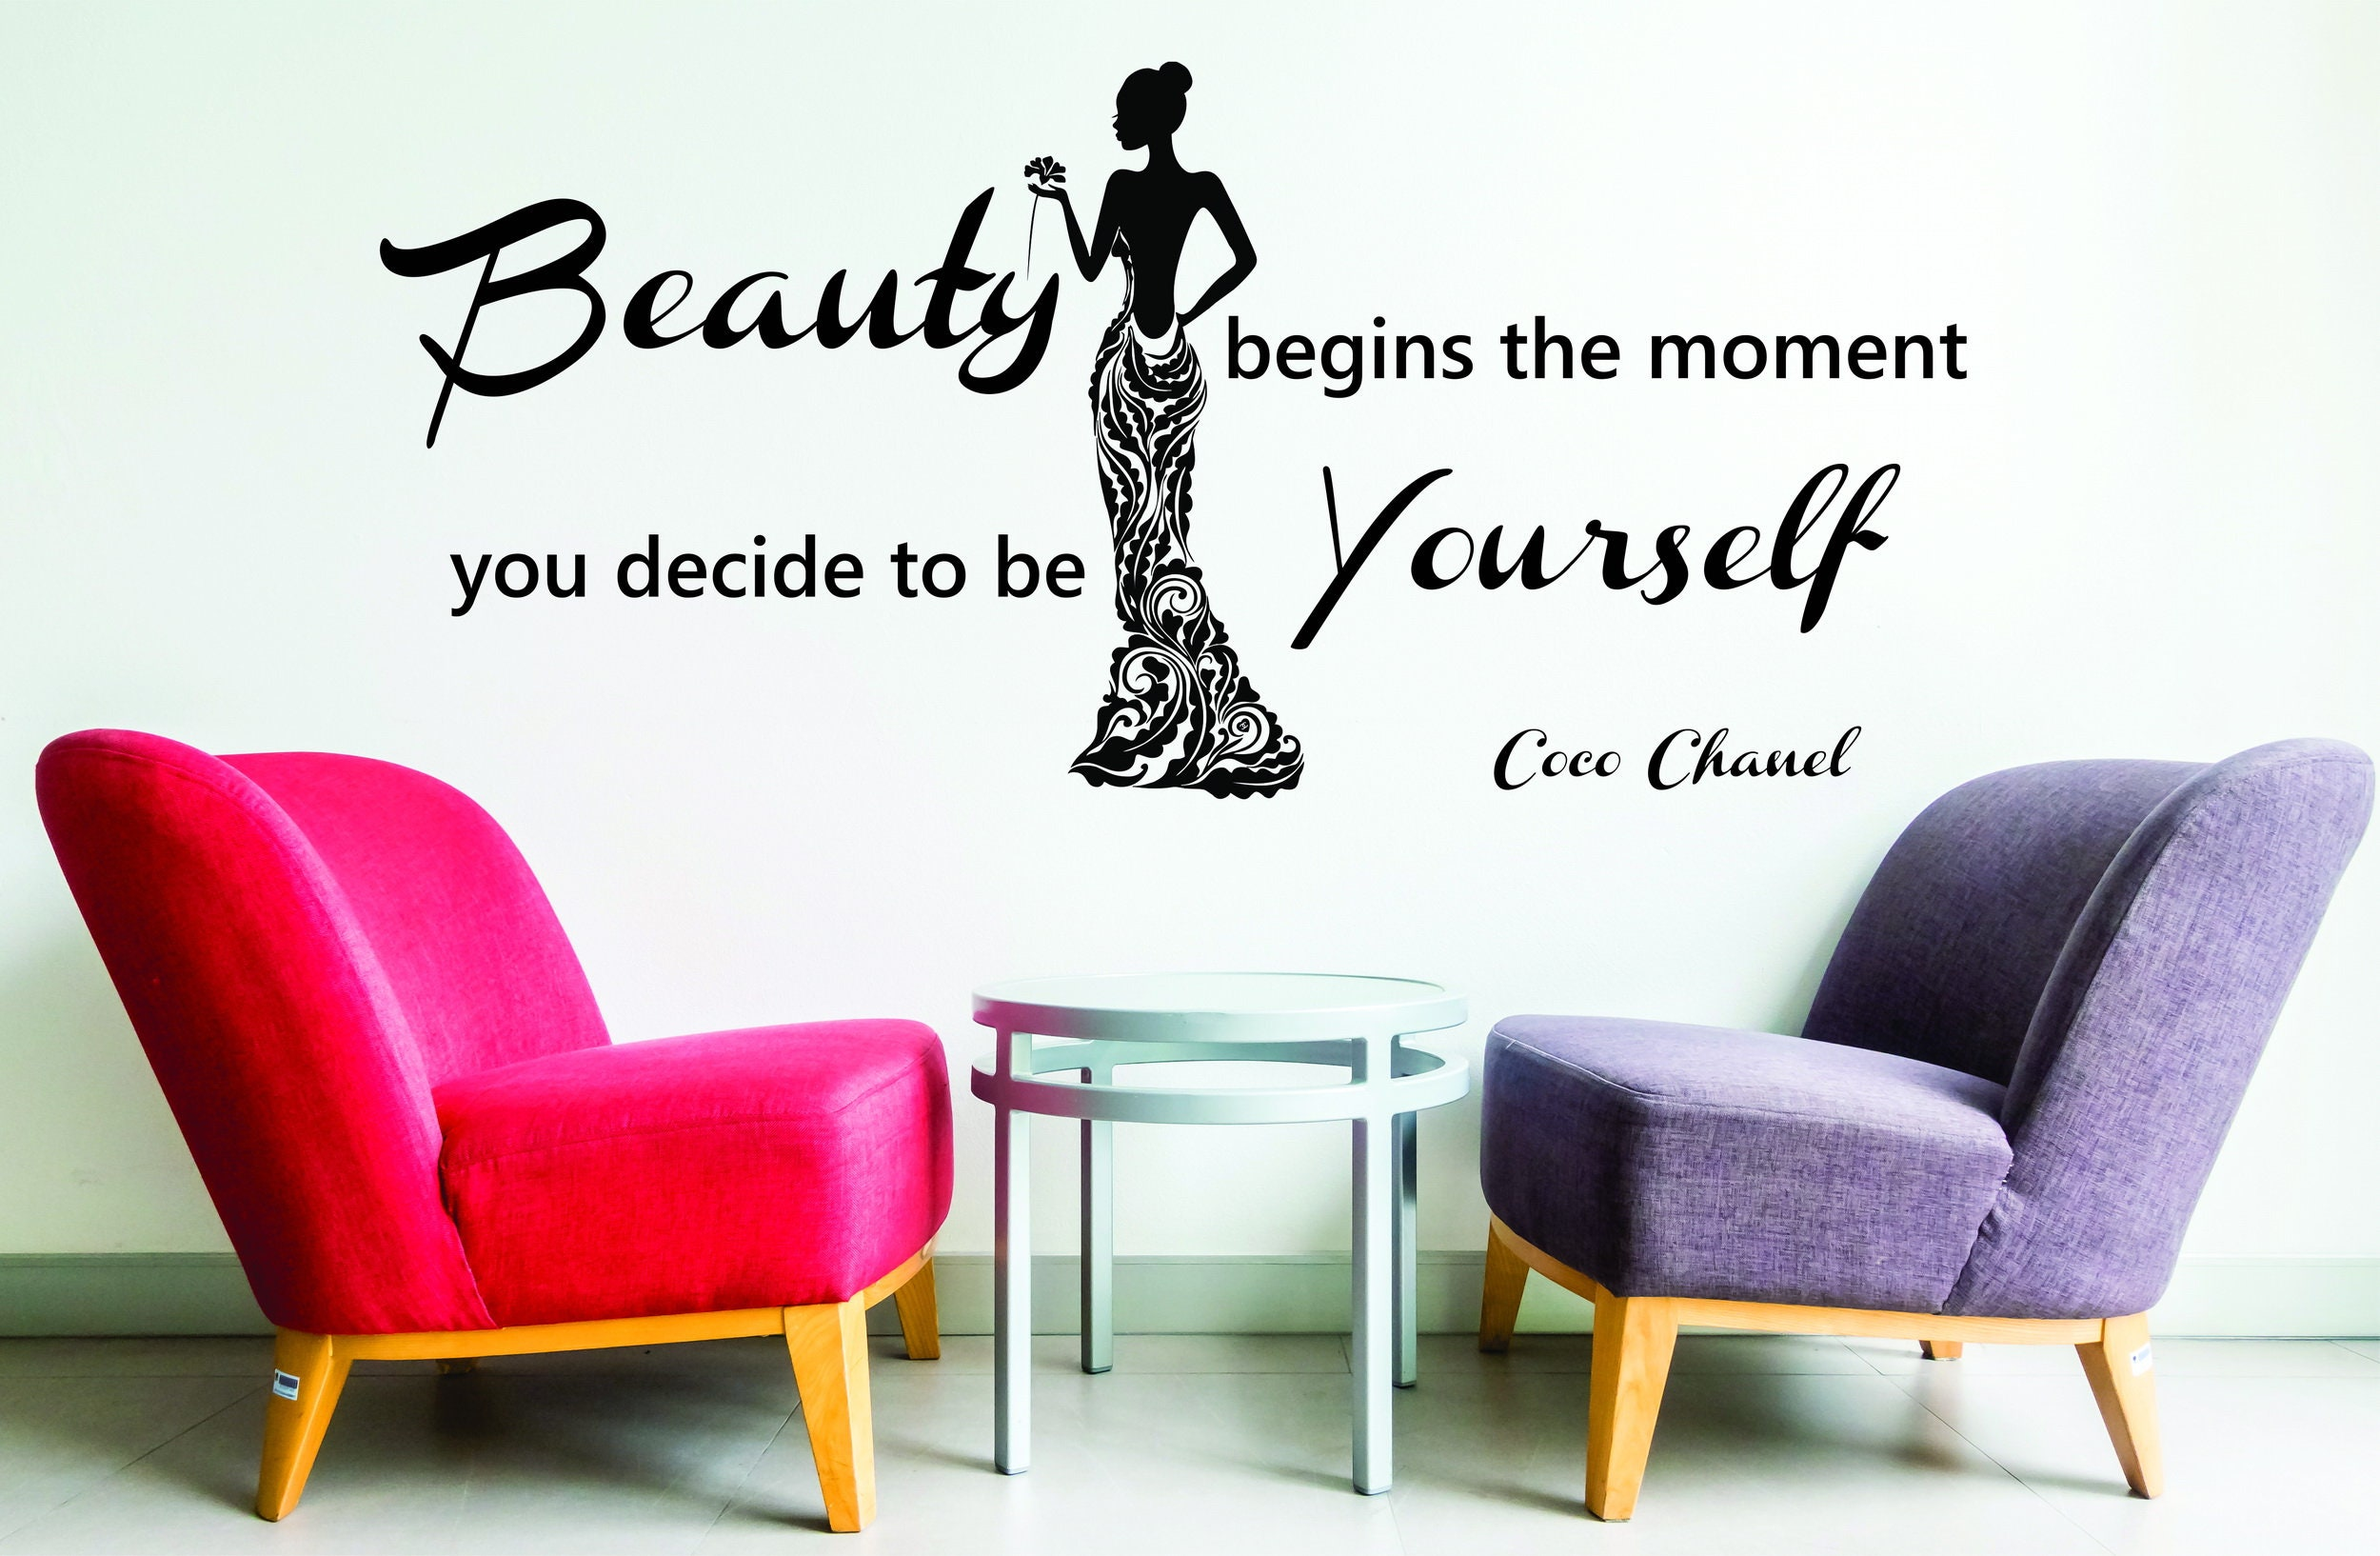 Coco chanel quote beauty begins the moment you decide to be yourselfextralarge office vinyl wall sticker decal bedroom